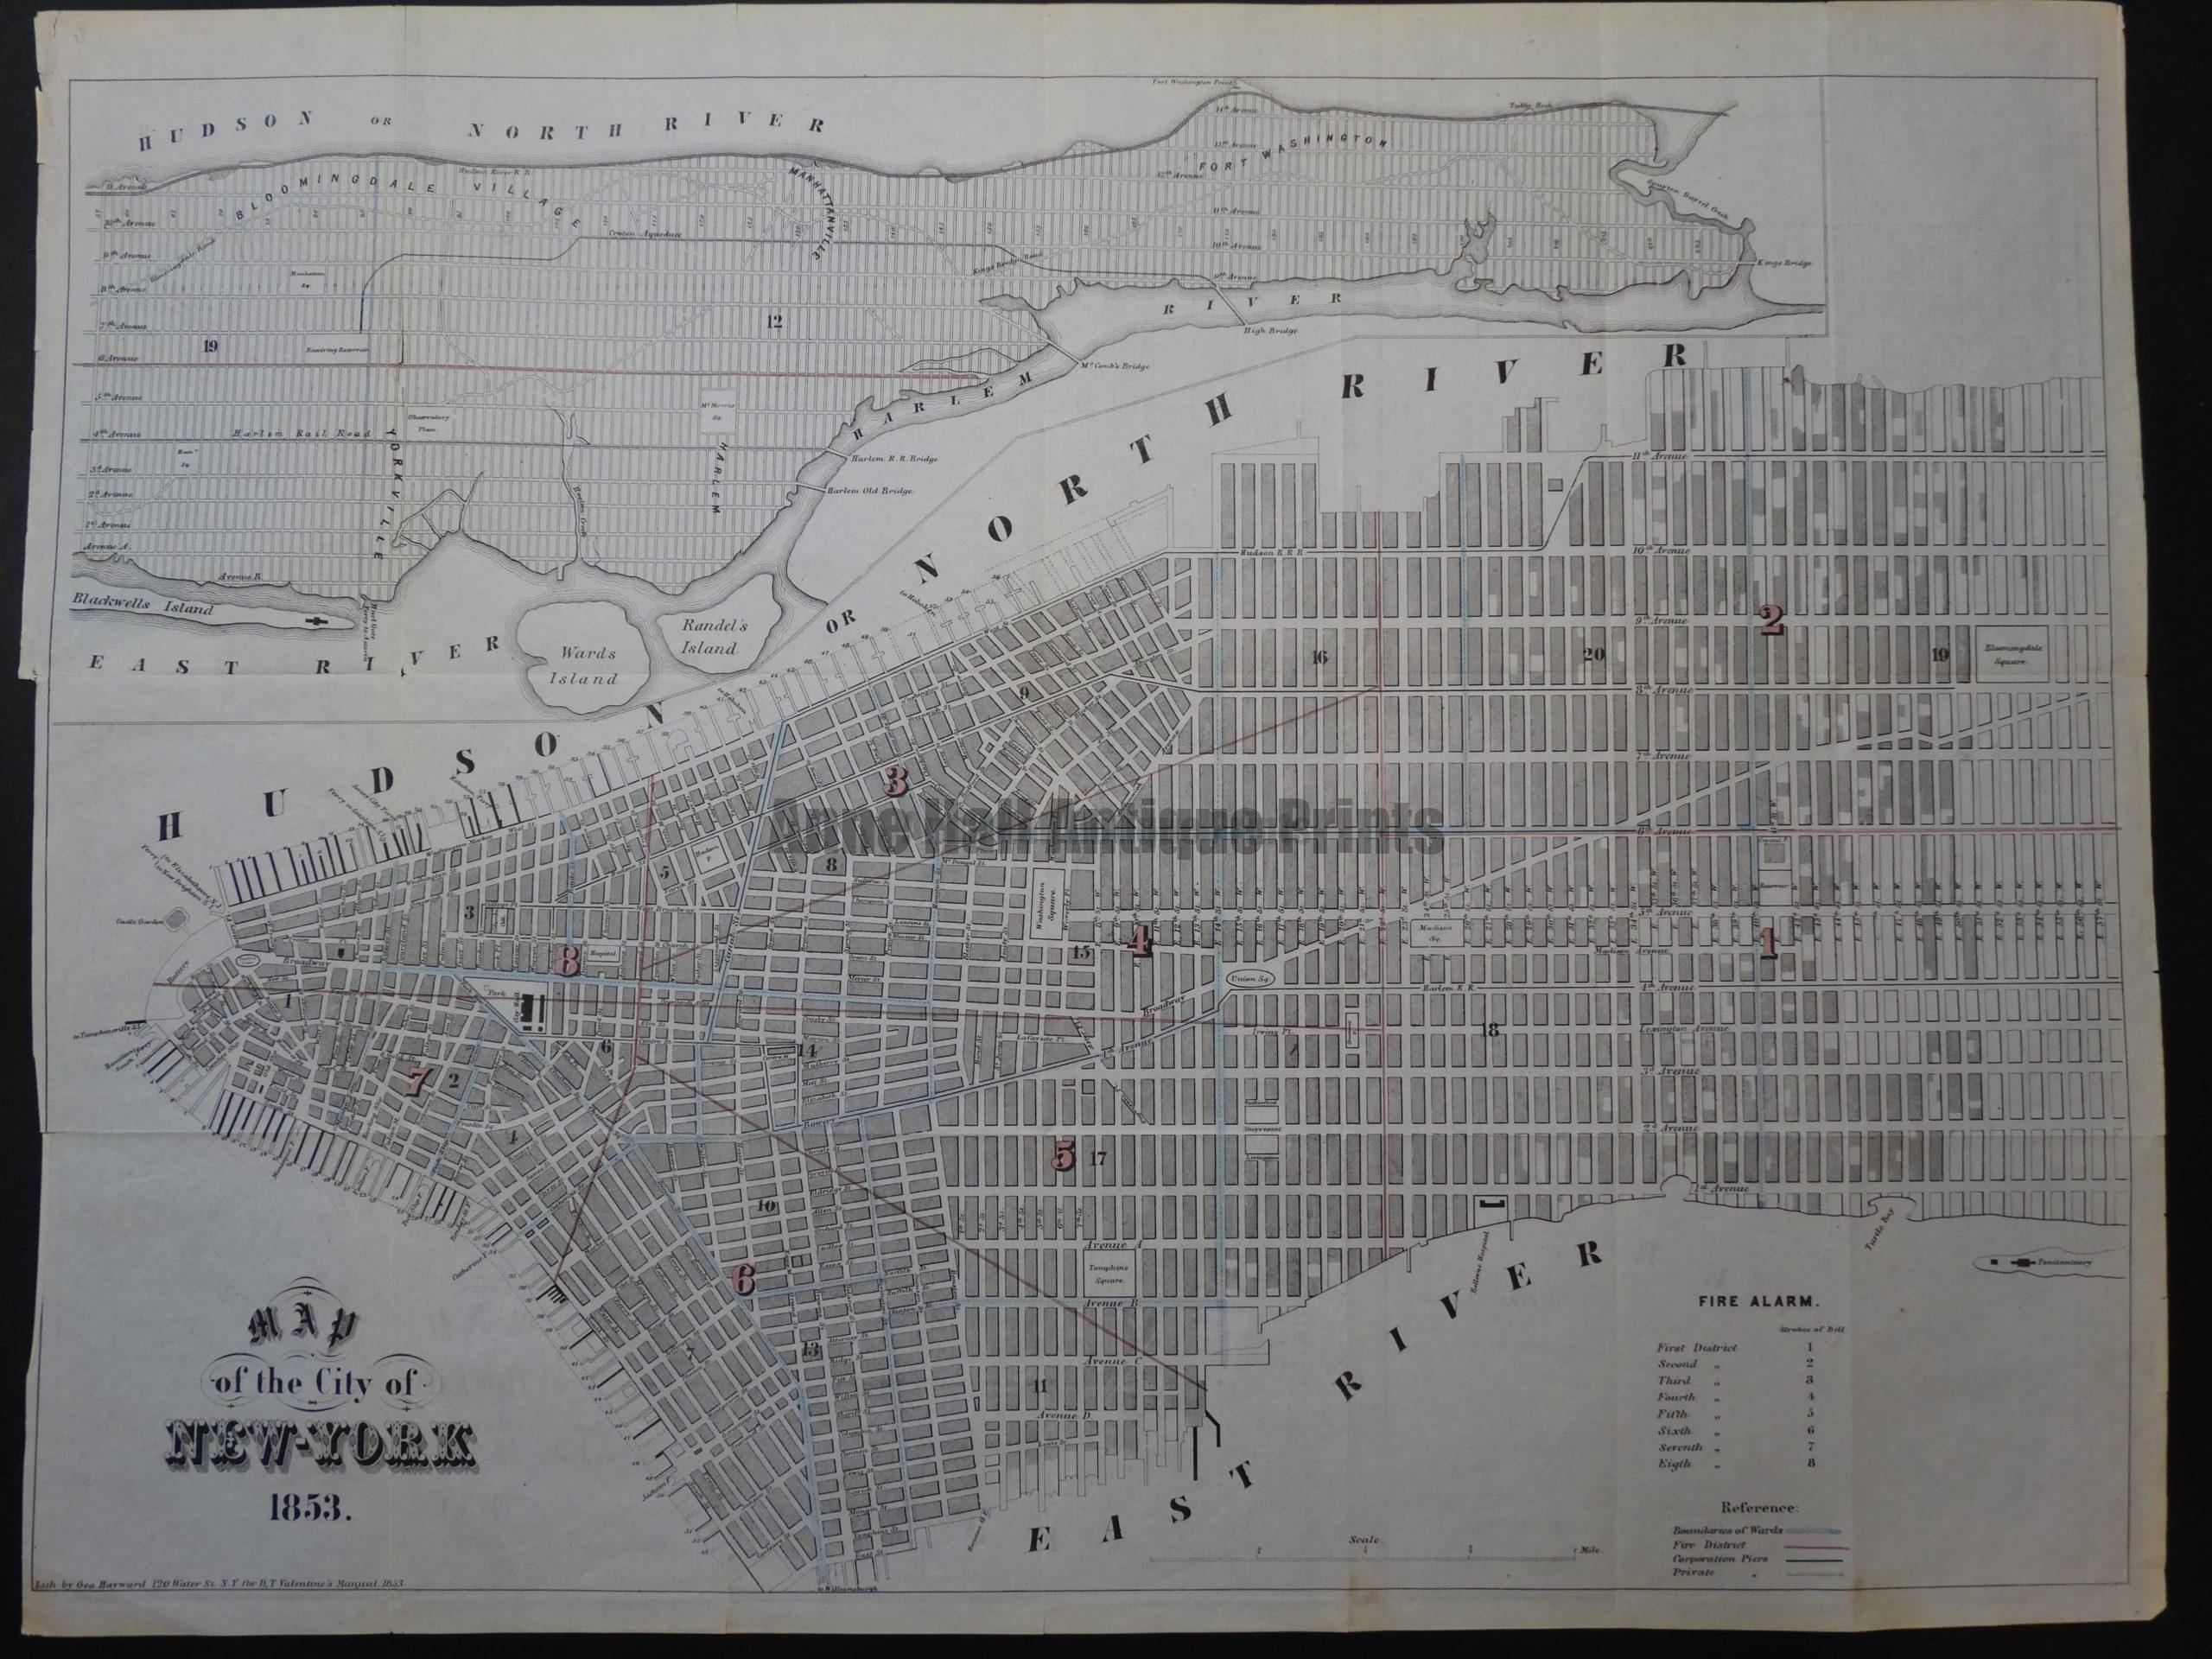 Striking antique map of lower Manhattan, published 1853.